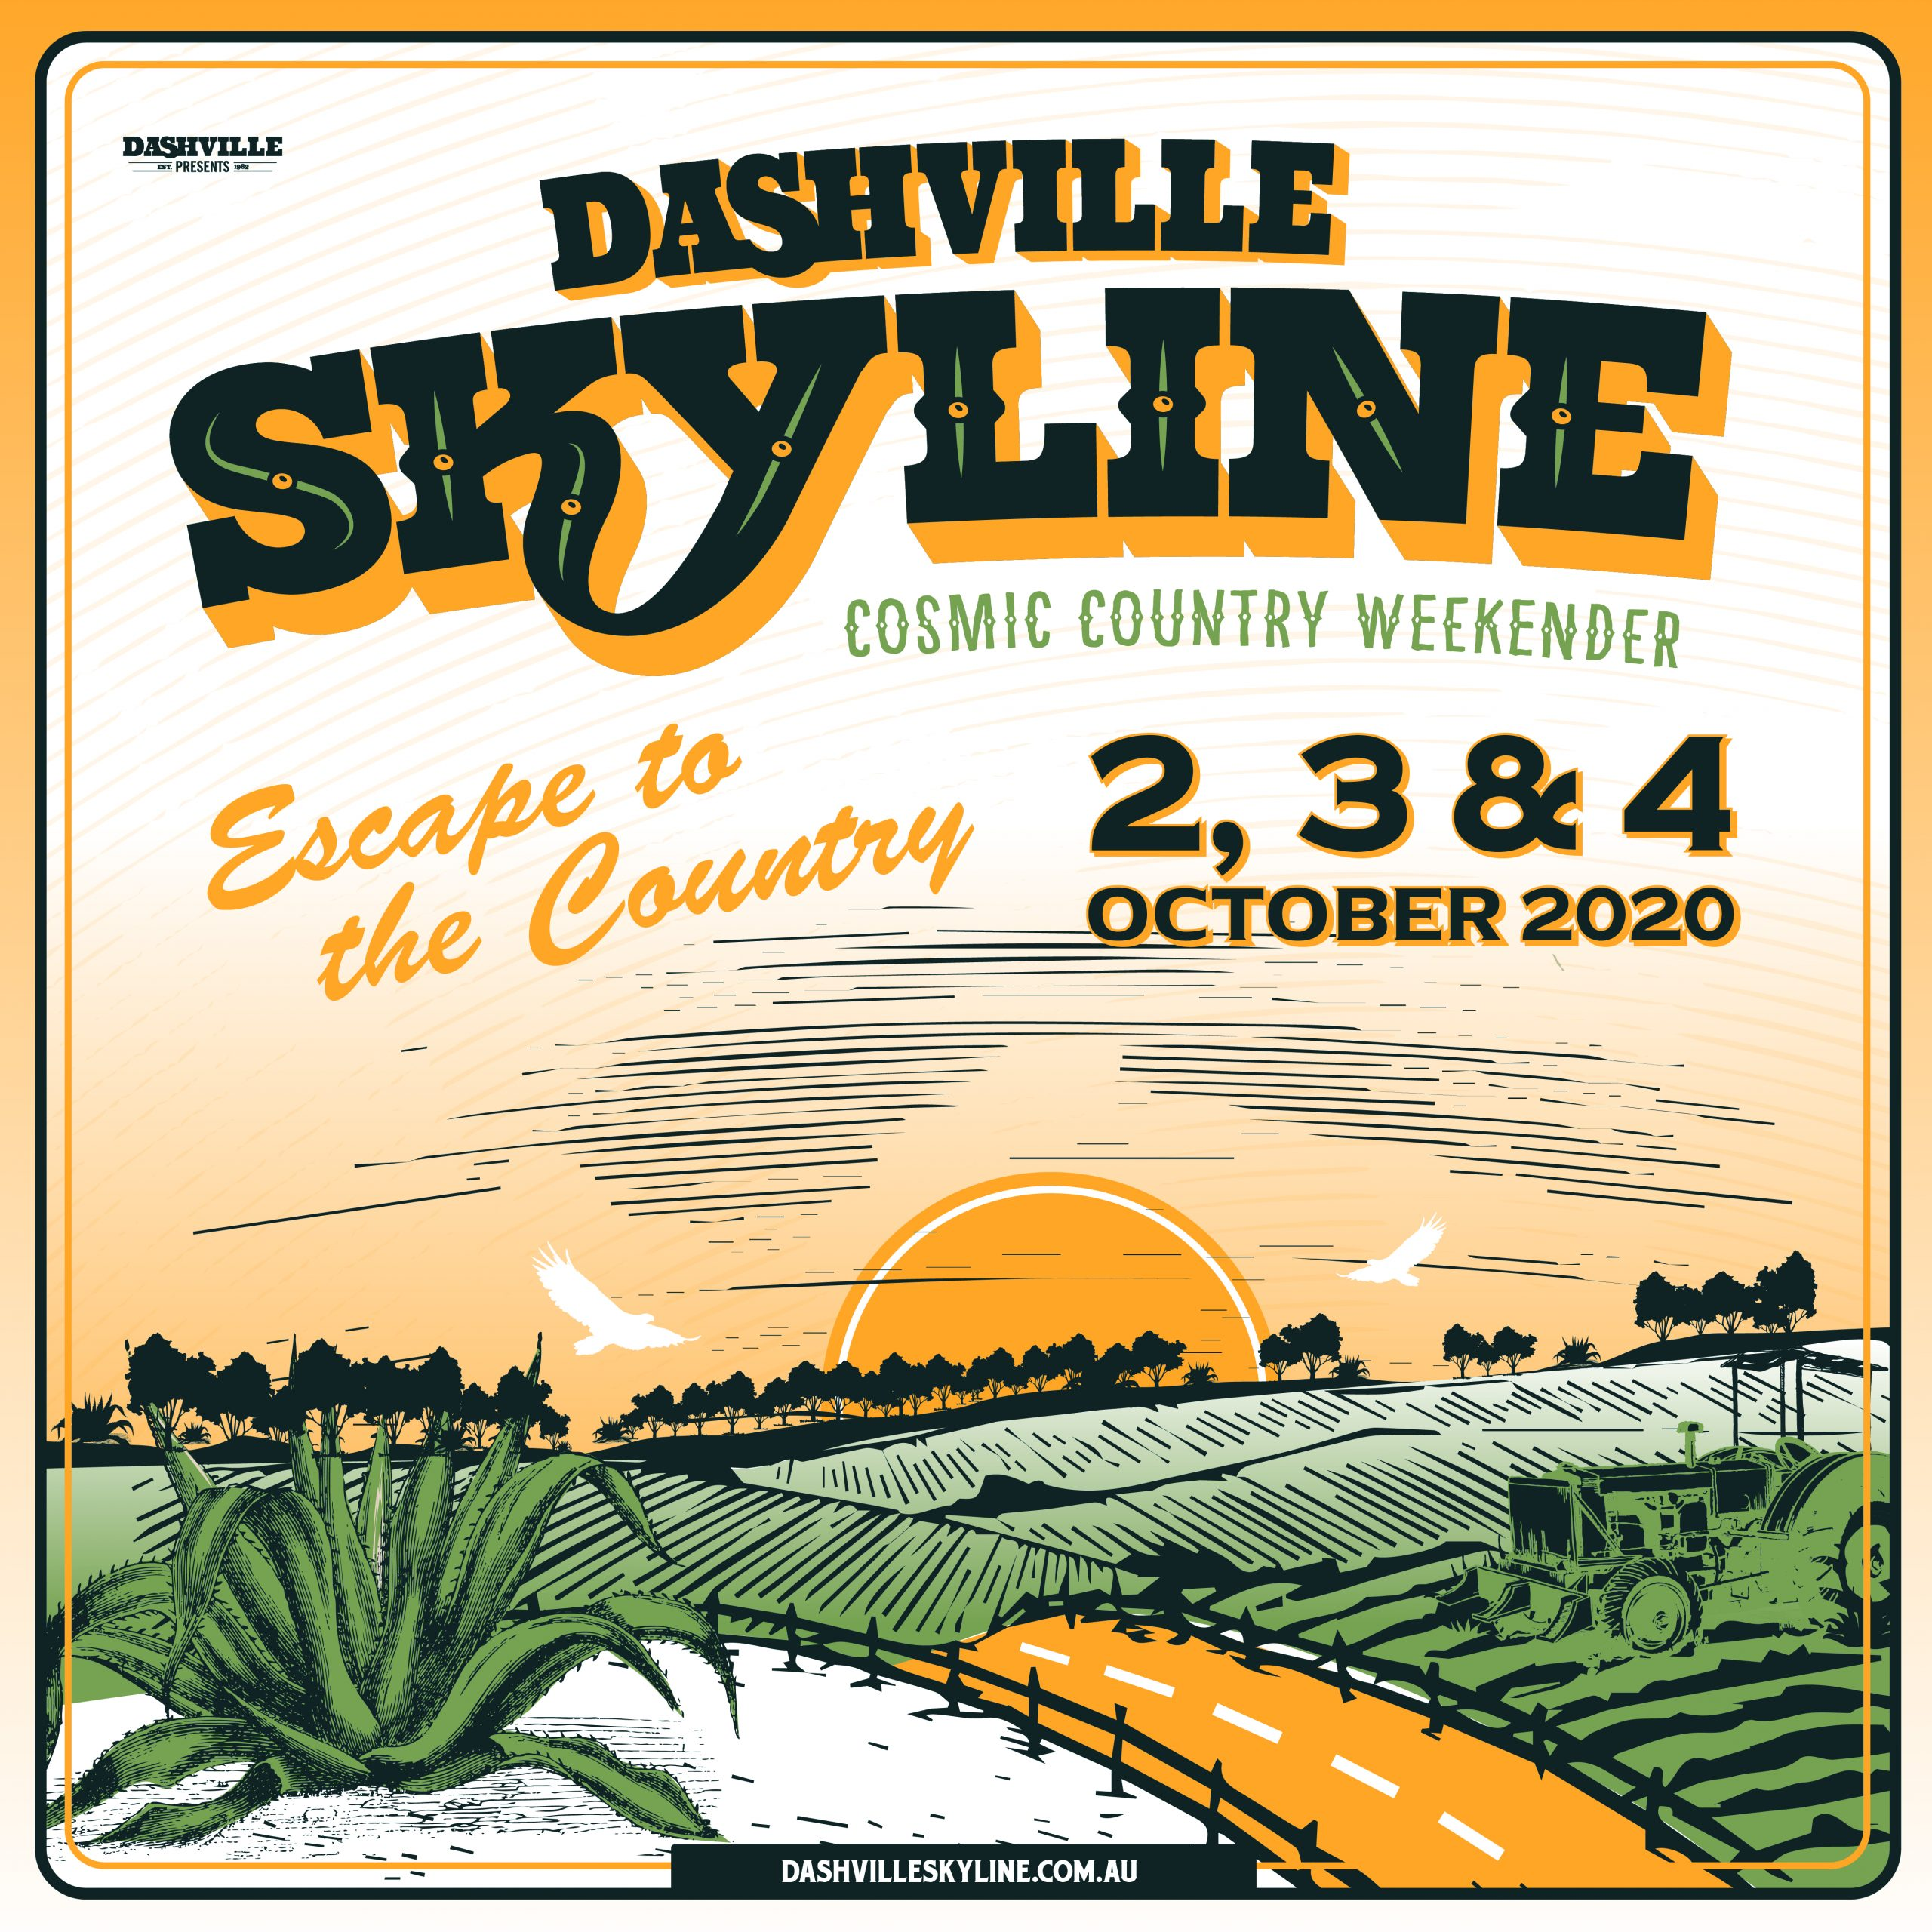 DASHVILLE Skyline 2020 Square Tile